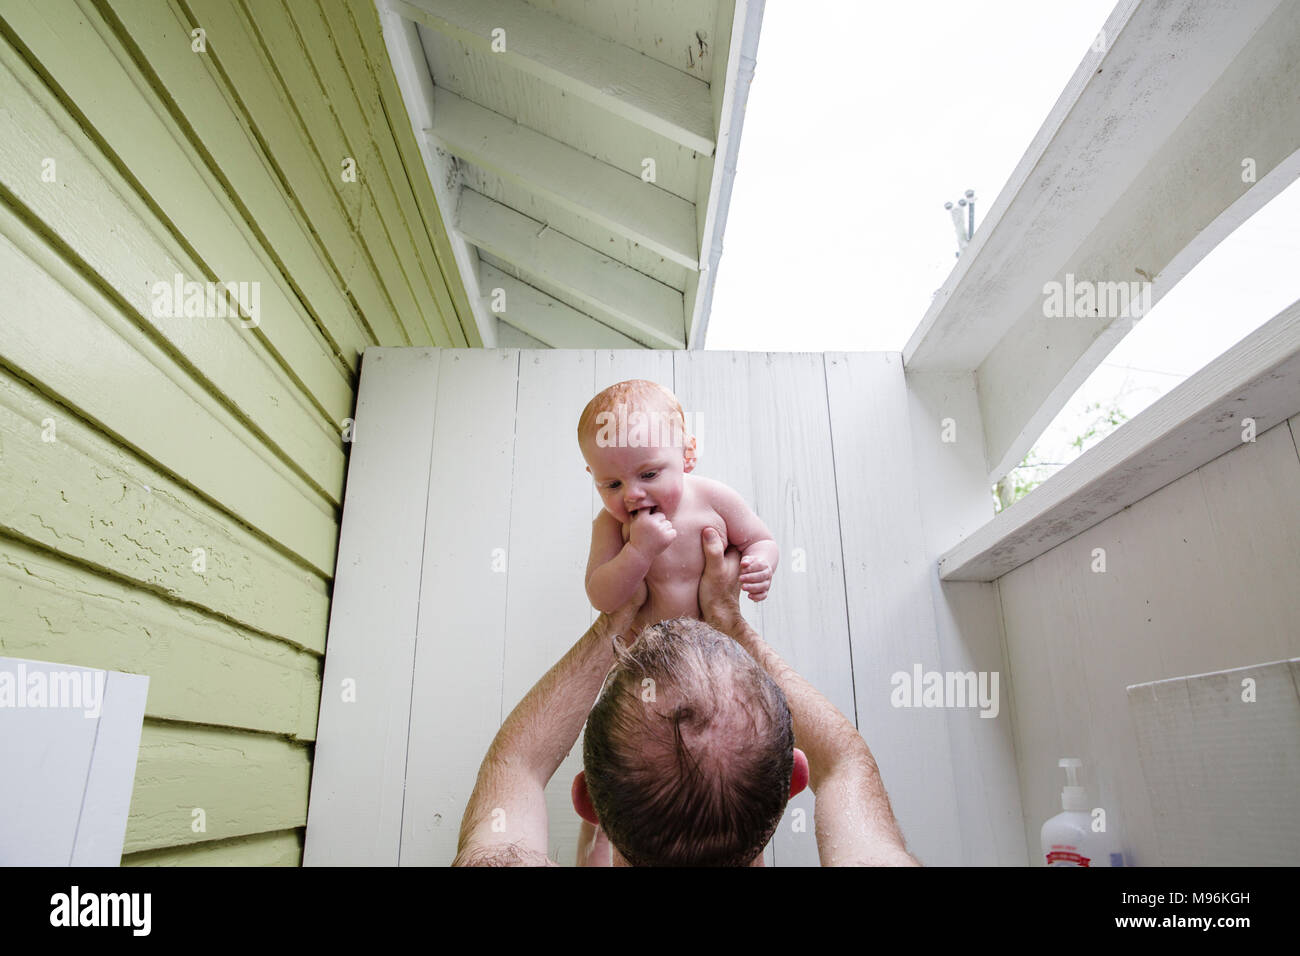 Man holding up baby - Stock Image